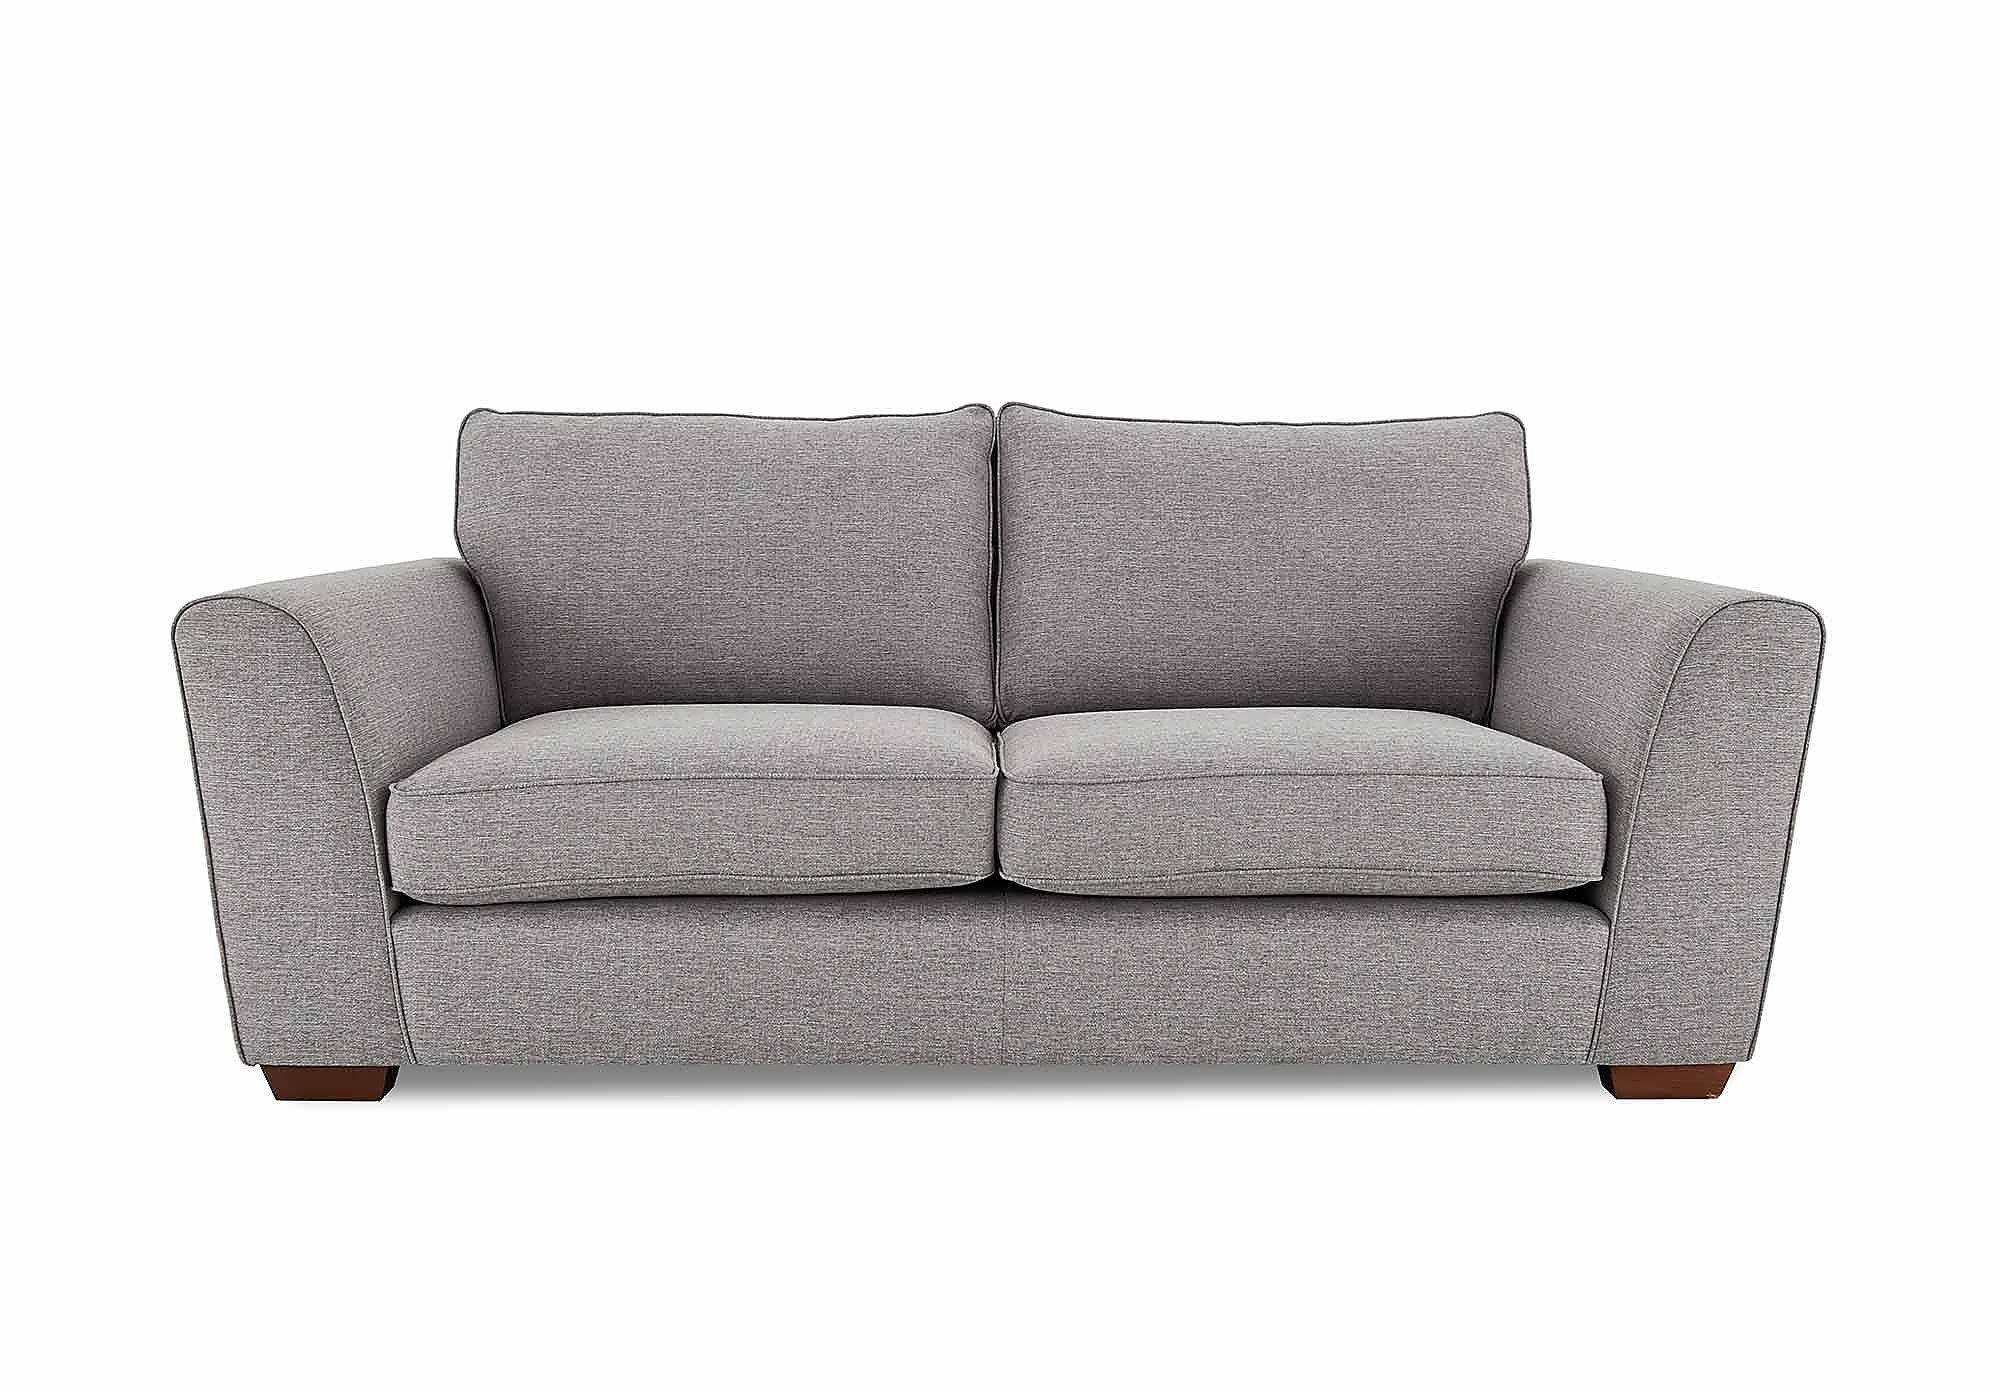 3 Seater Sofa Bed High Street Oxford Street 3 Seater Fabric Sofa Bed Furniture Village